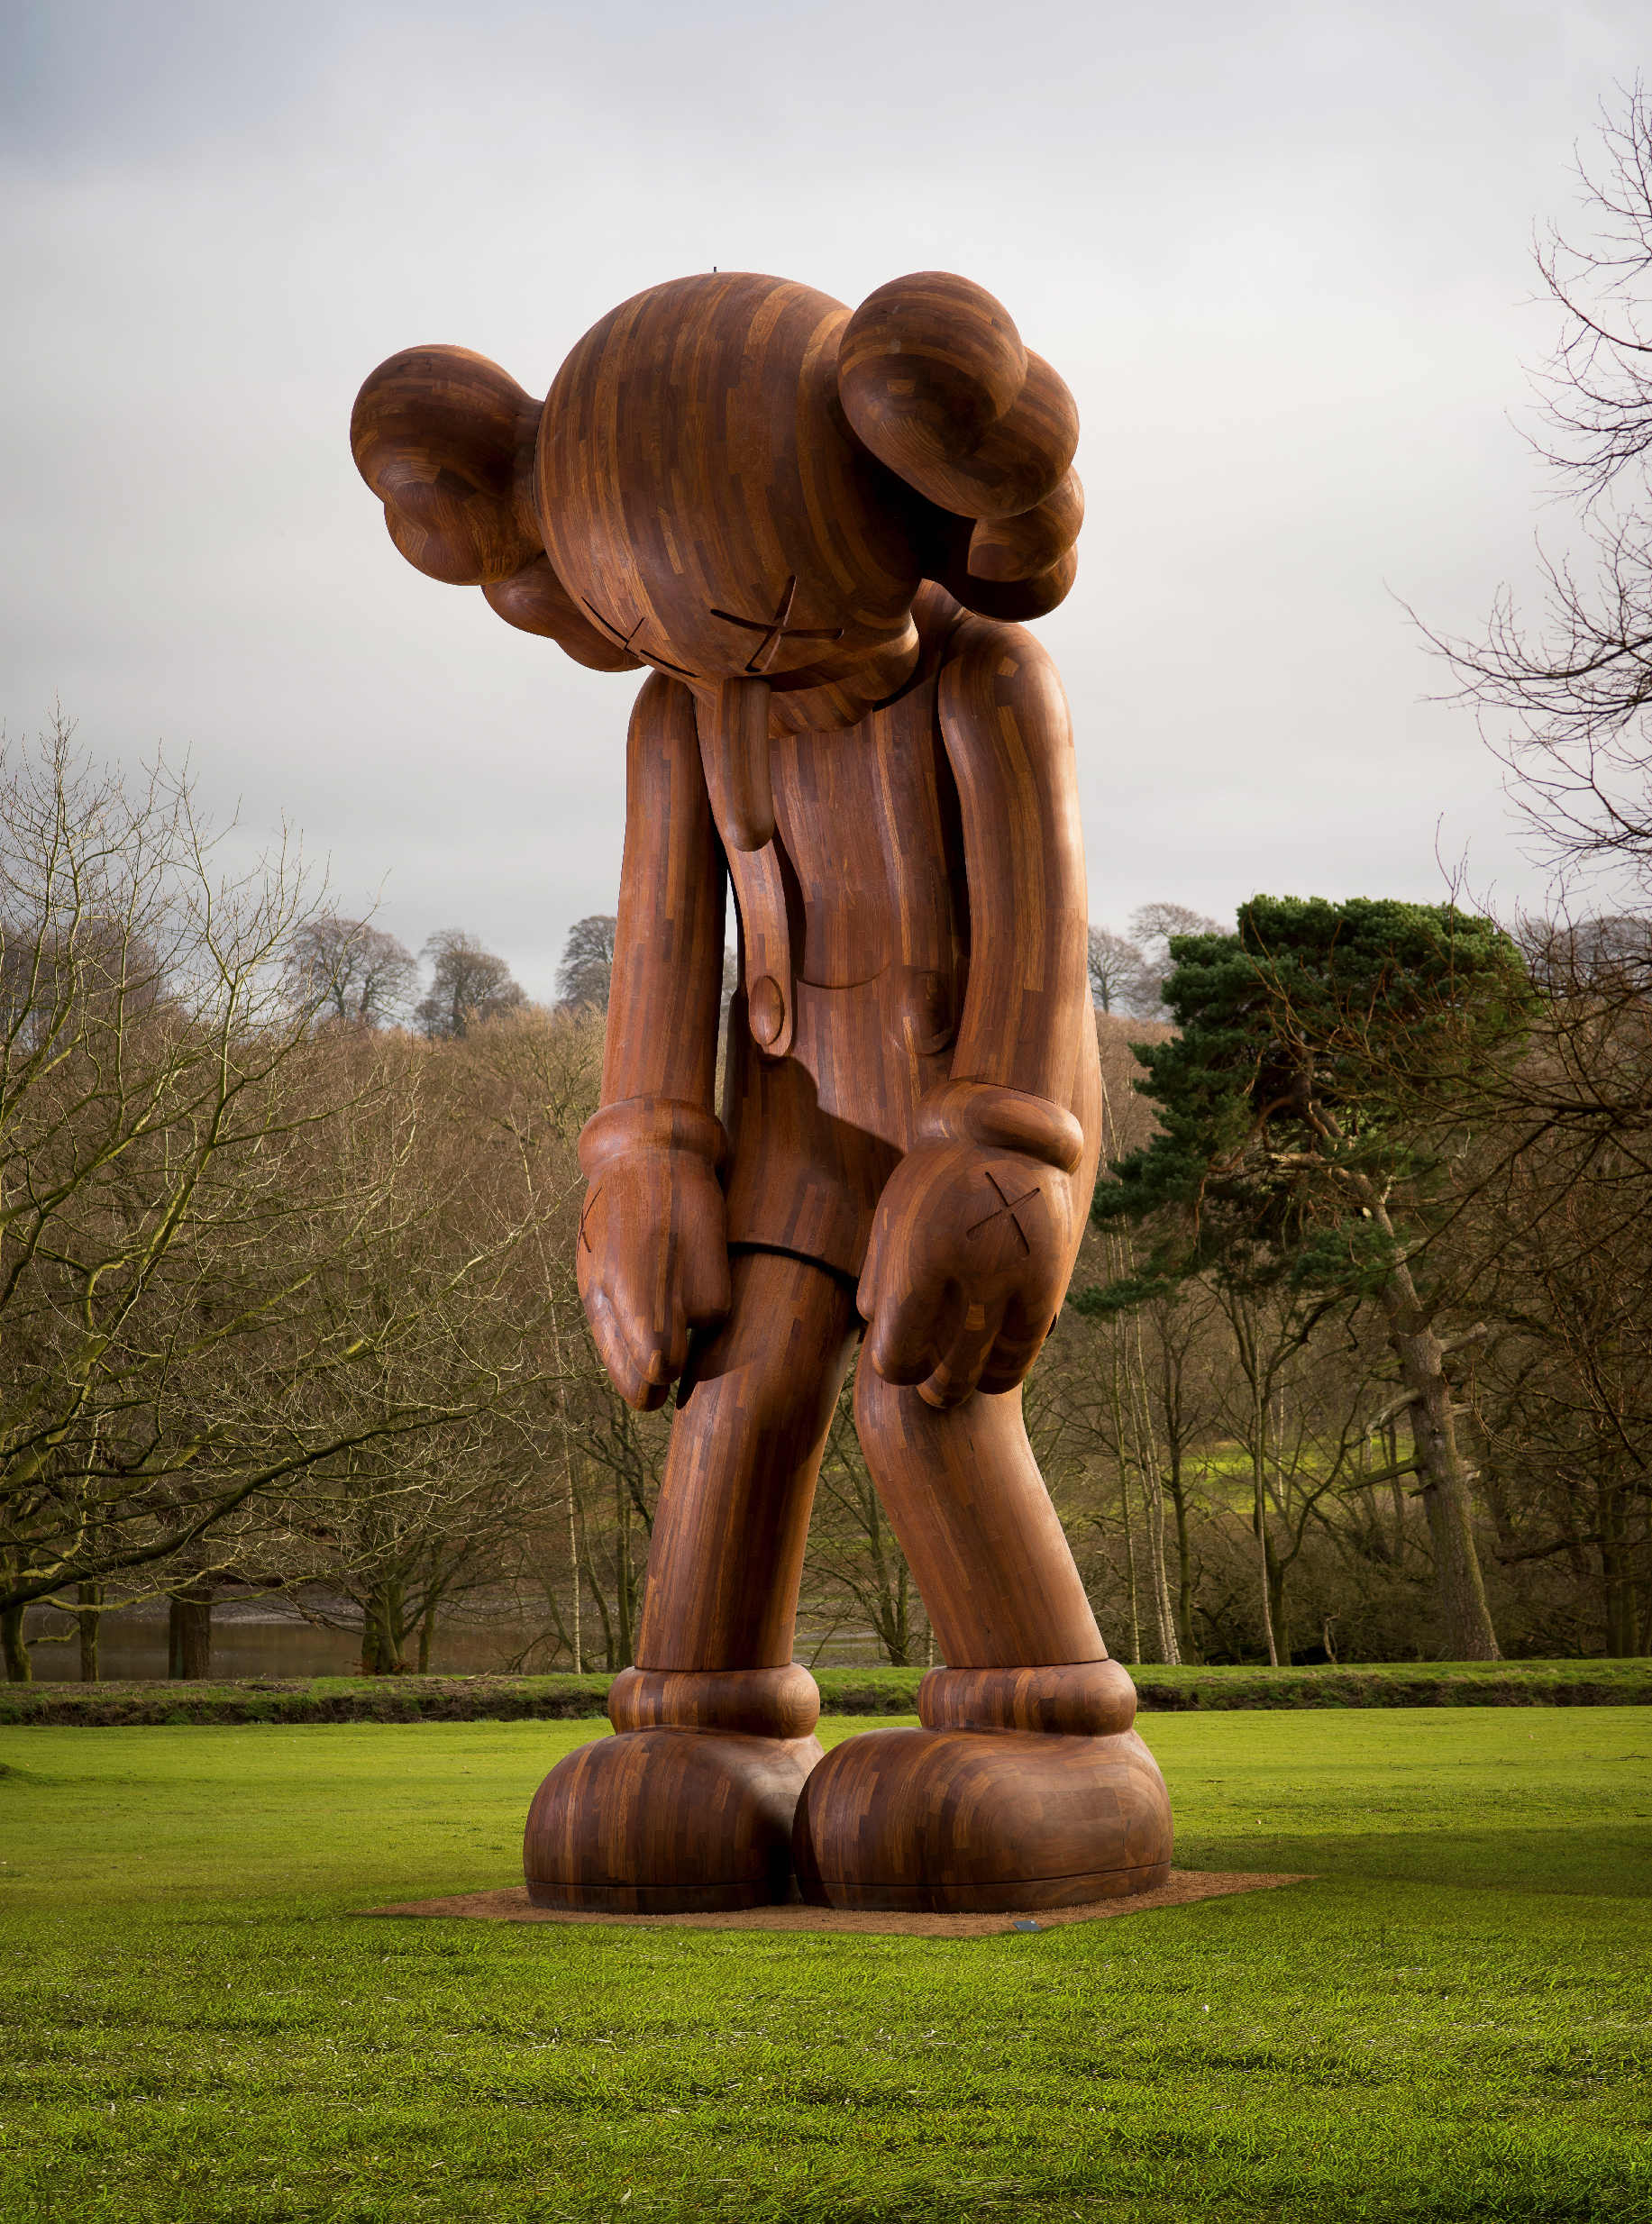 How KAWS and his cartoon sculptures capture compassion and companionship